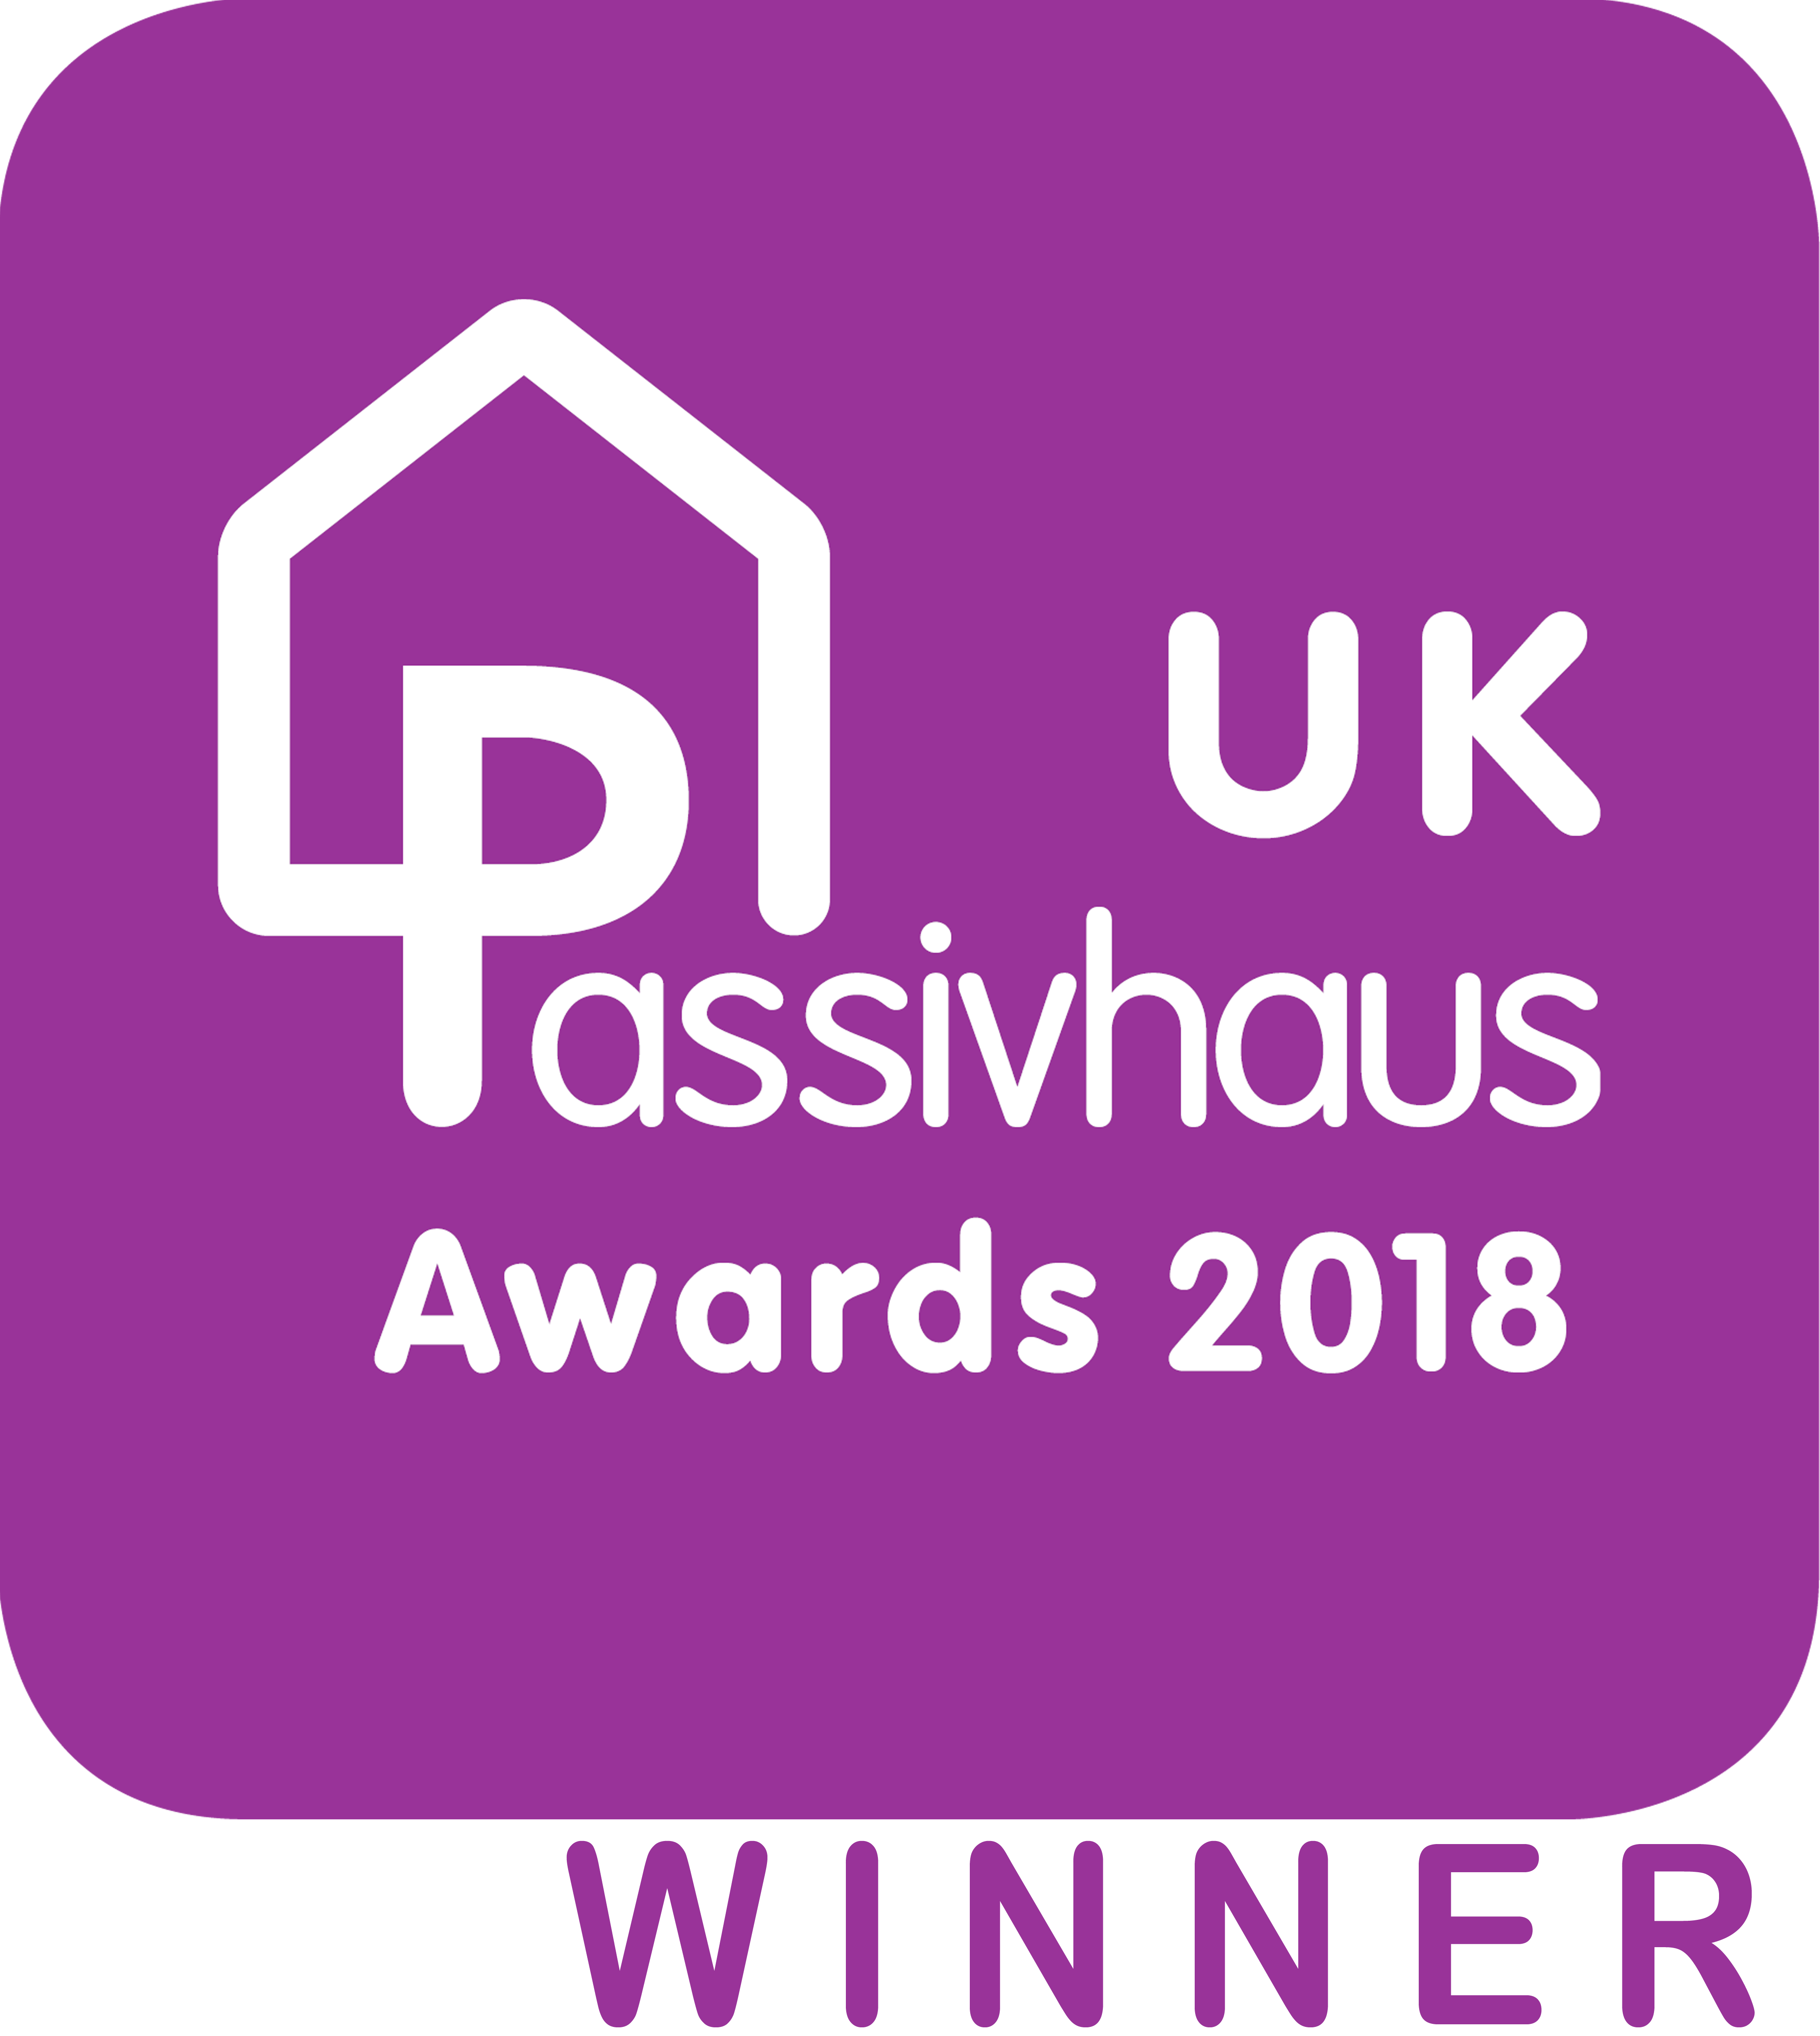 2018 UK Passivhaus Awards WINNER small projects category sponsored by Ecology Building Society